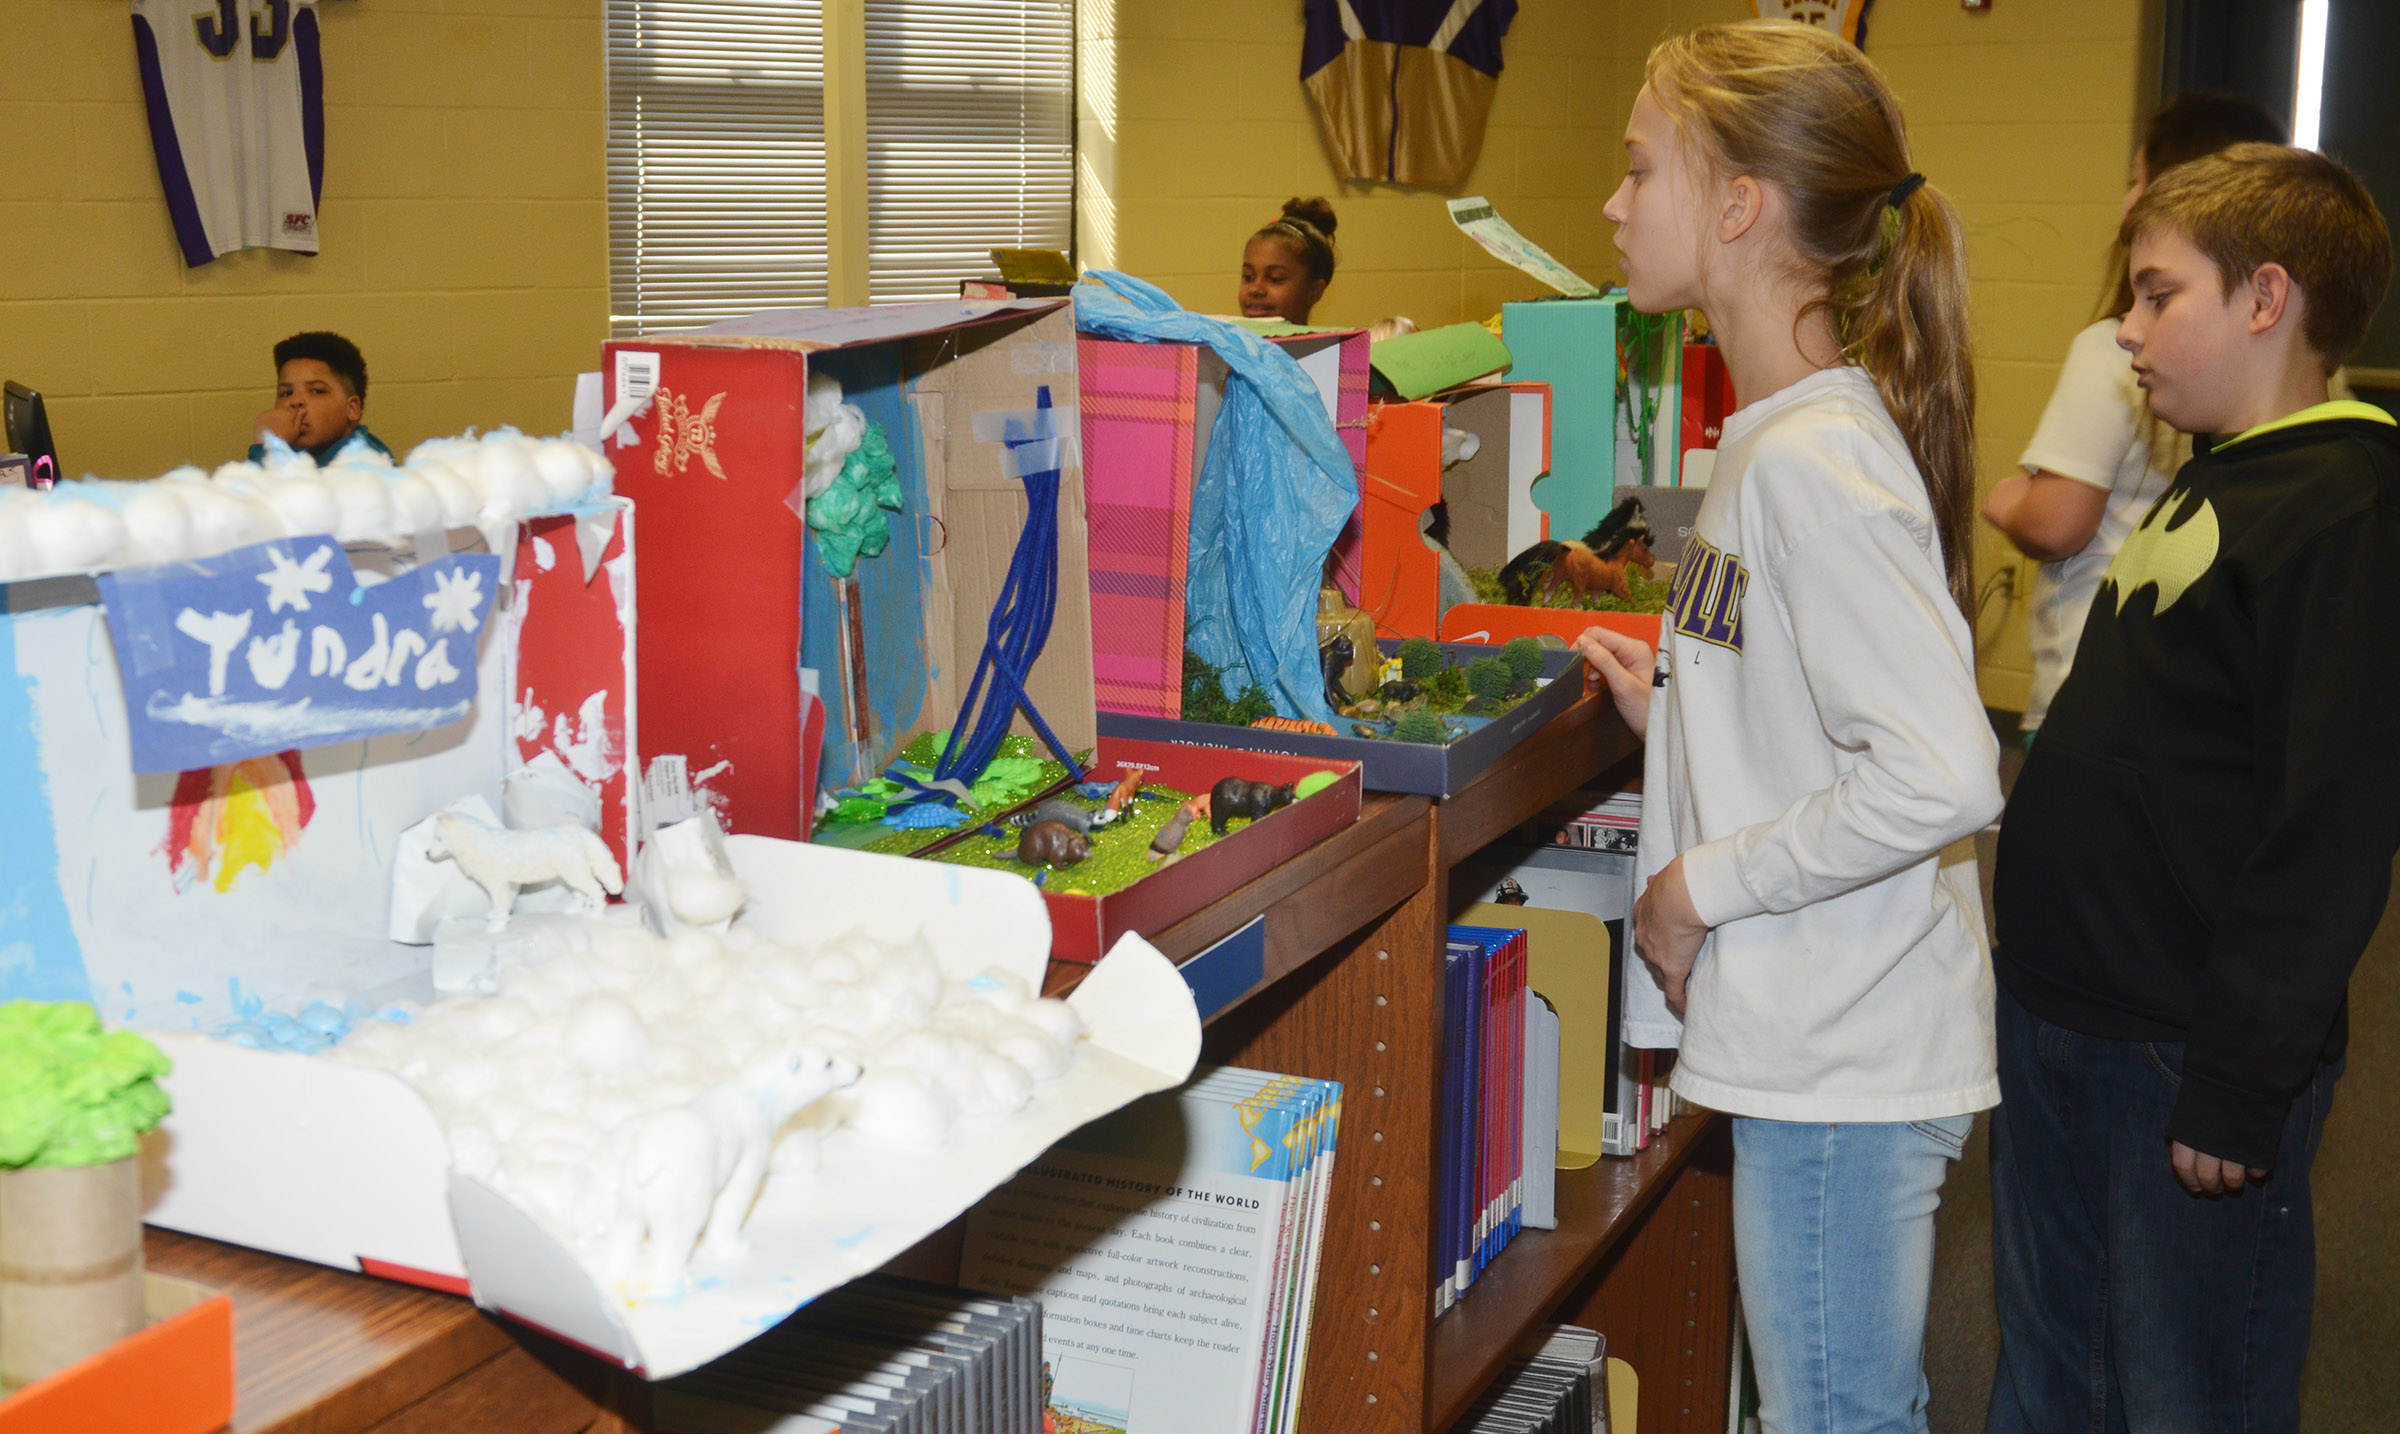 CMS students view the ecosystem models on display.